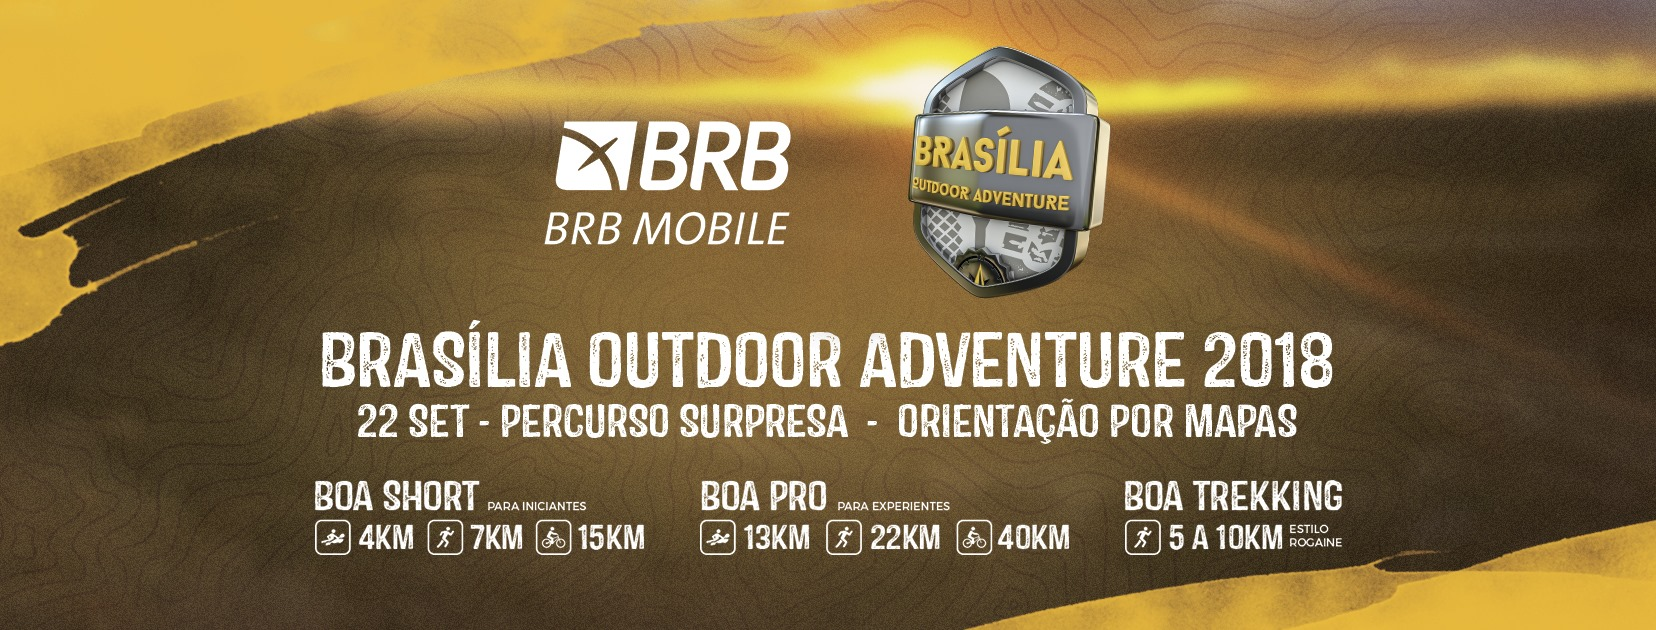 BRB BRASÍLIA OUTDOOR ADVENTURE 2018